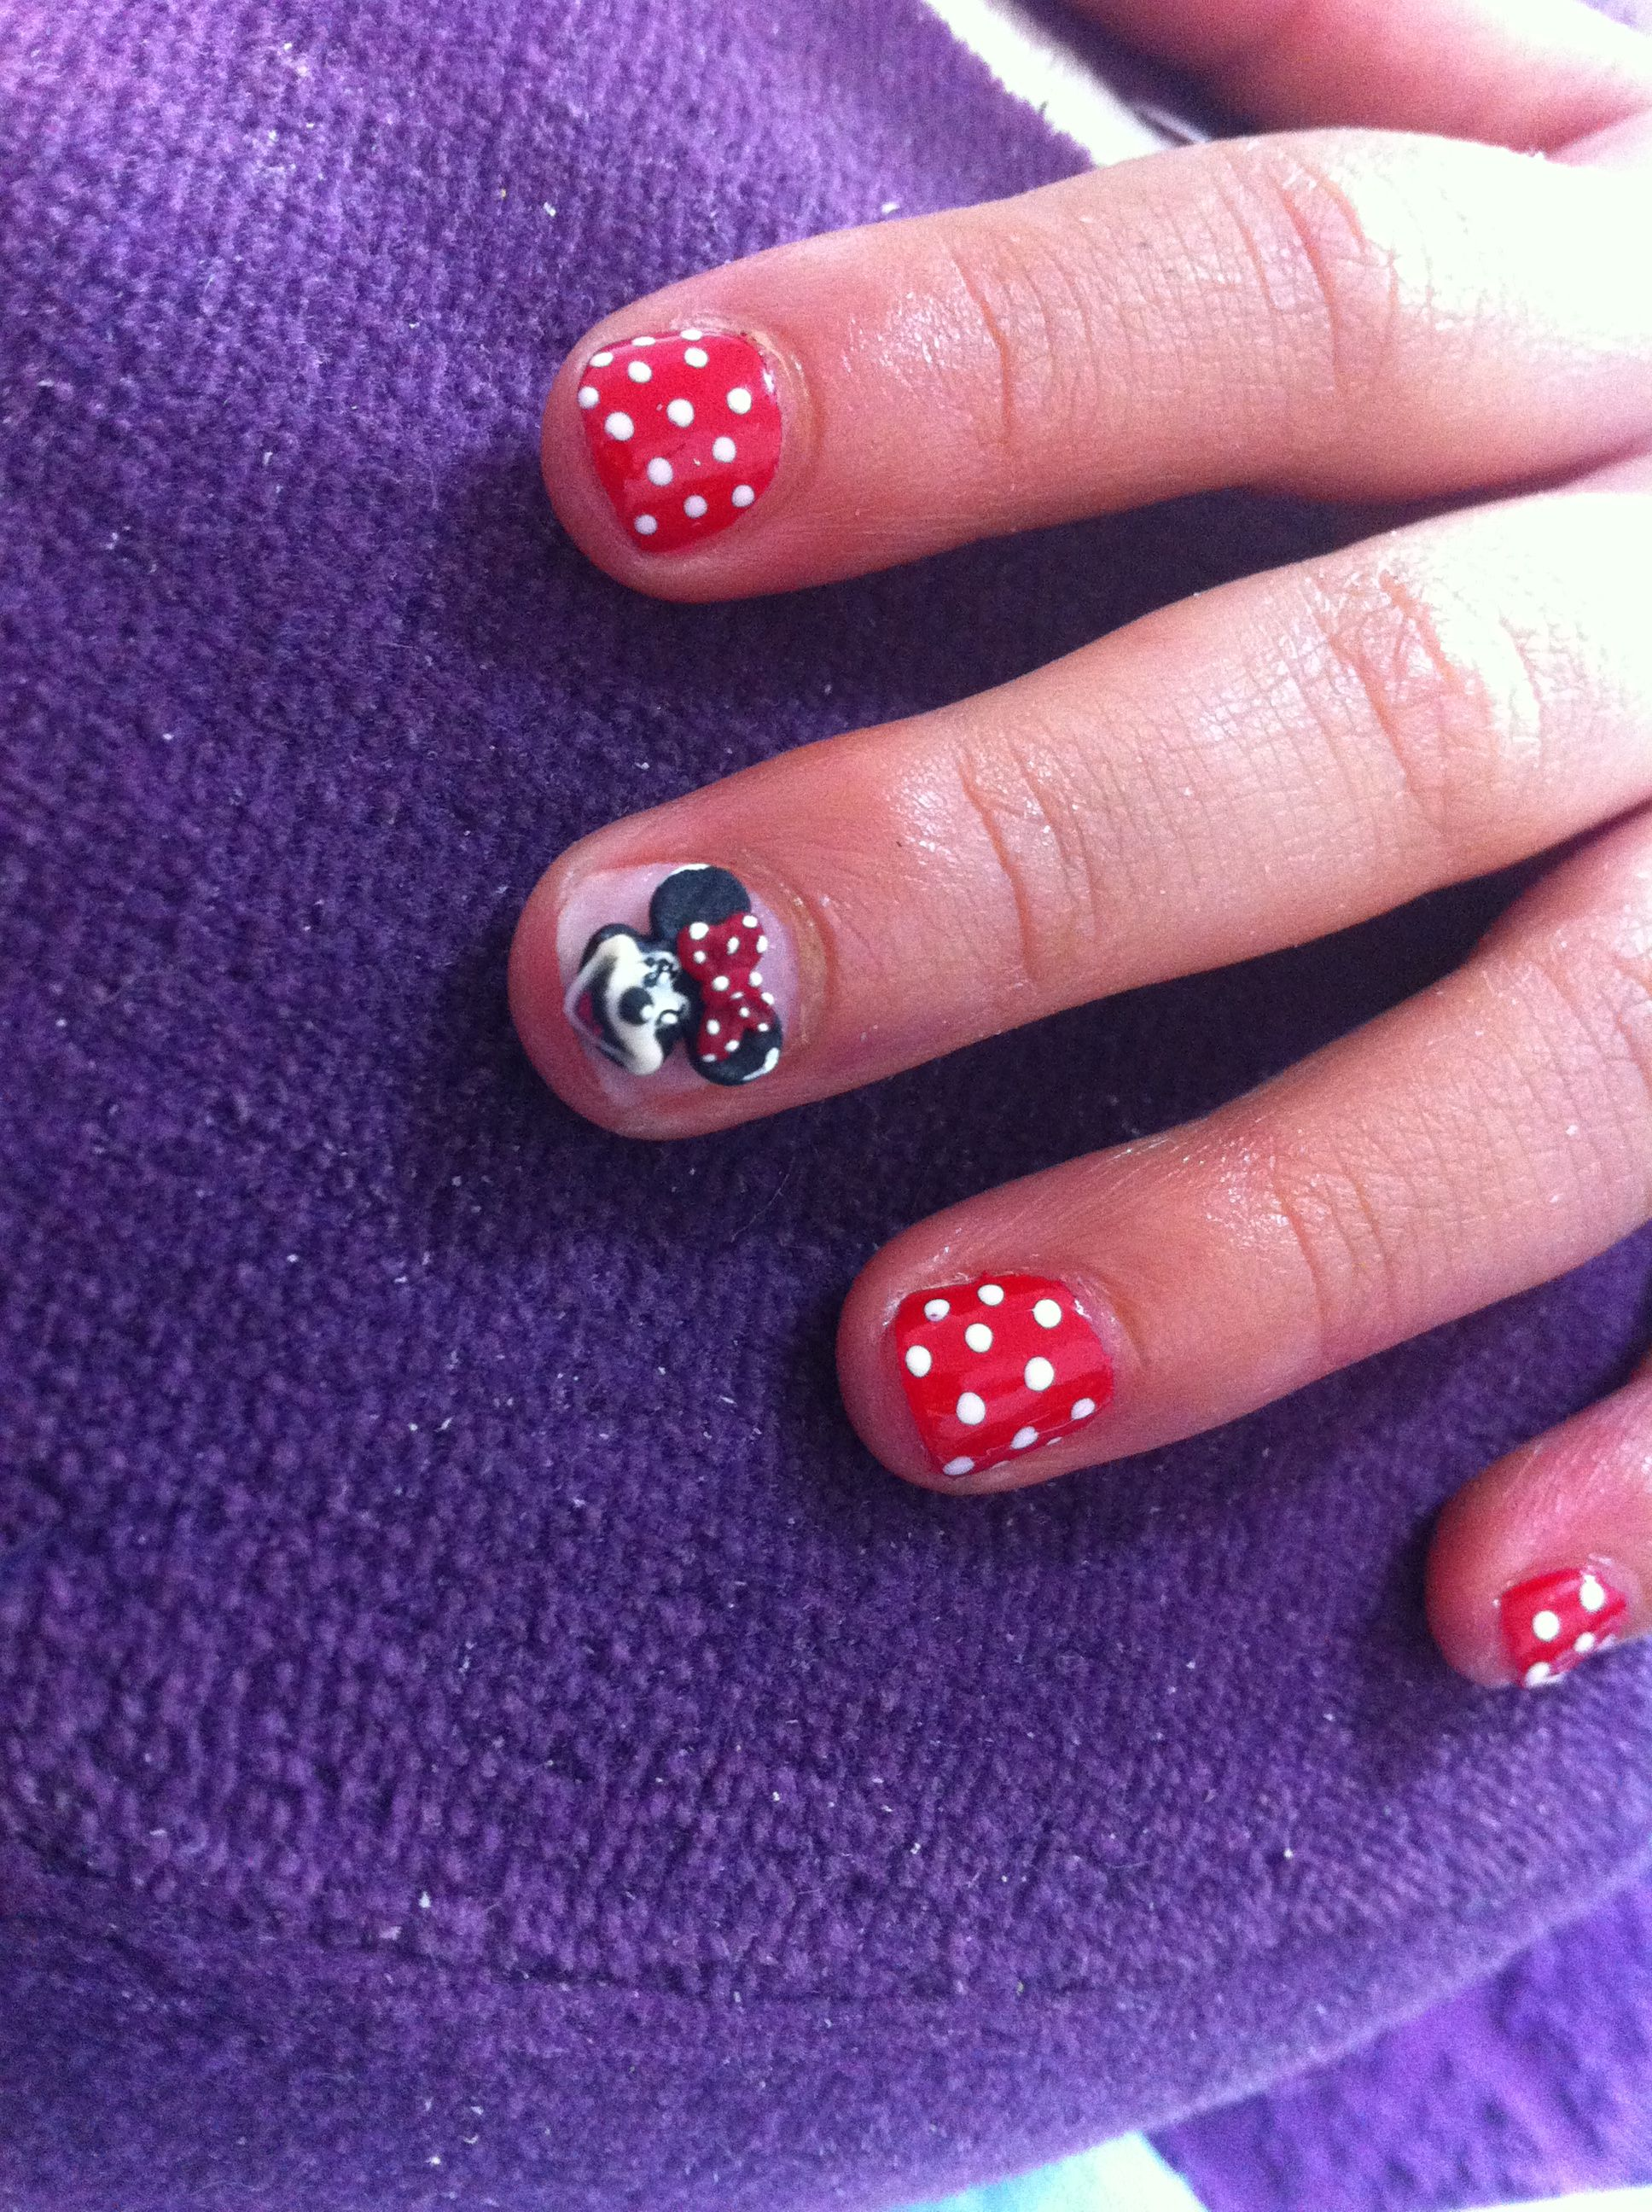 Minnie mouse 3d nail art on little girls finger nails she loved minnie mouse 3d nail art on little girls finger nails she loved them prinsesfo Choice Image